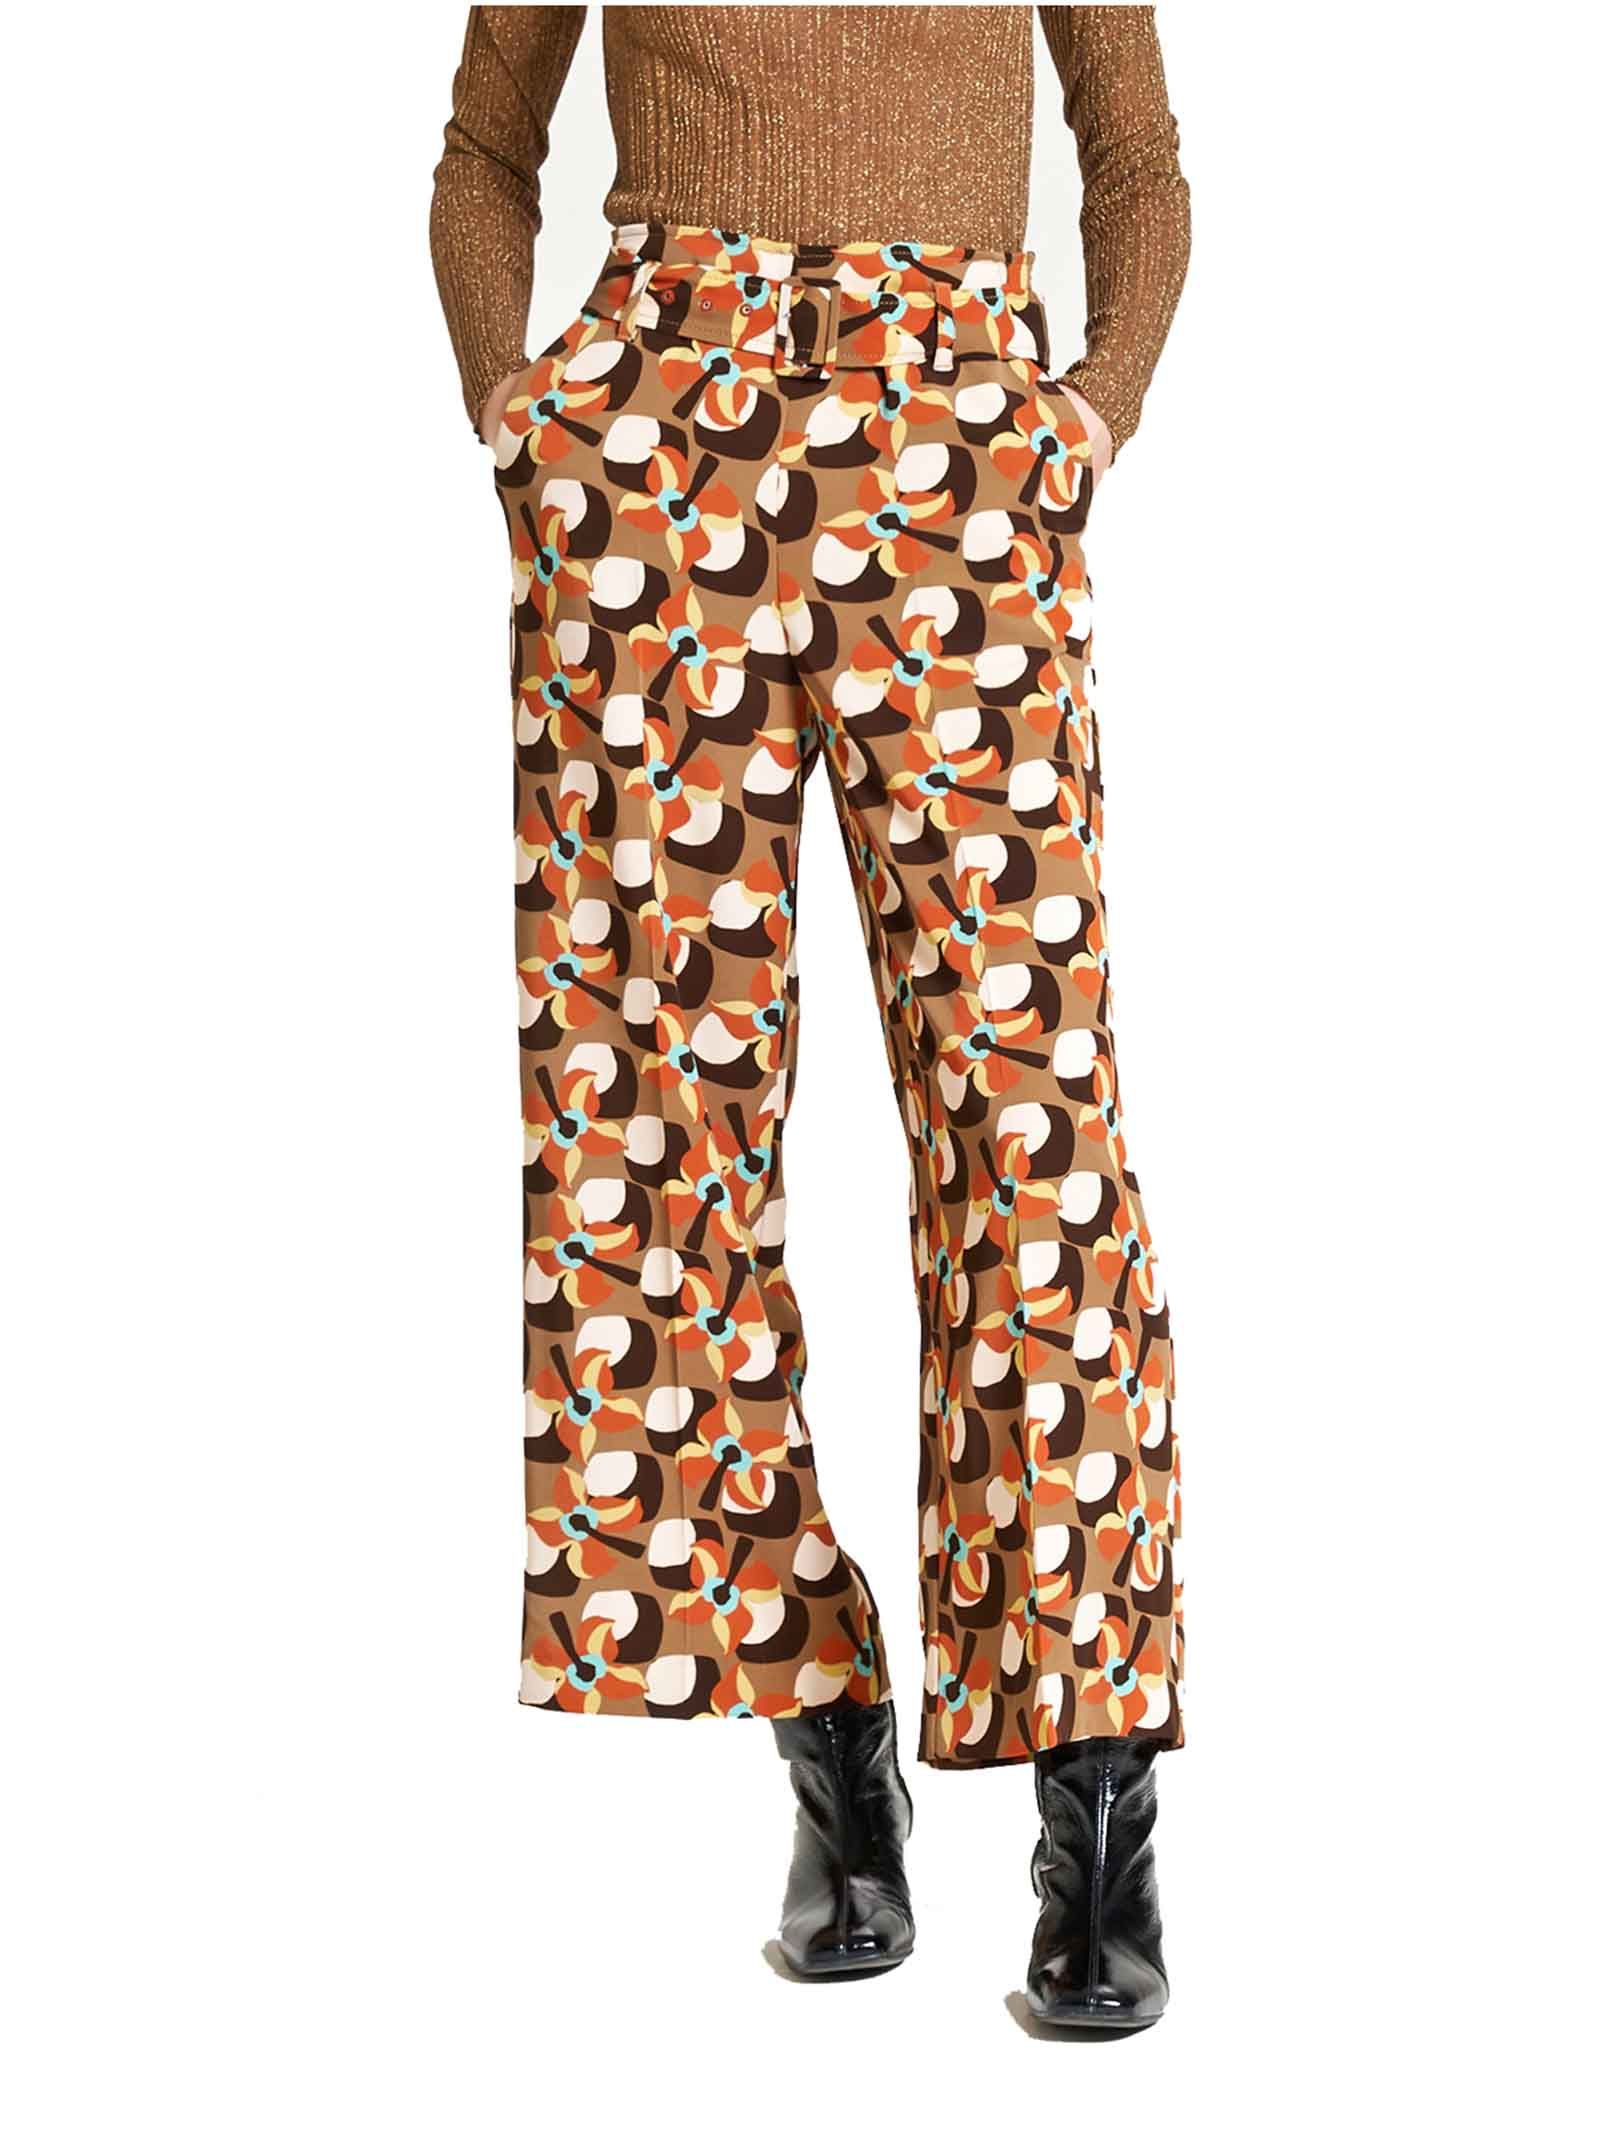 Women's Clothing Trousers Wallpaper Flow in Beige Twill with Pattern Wide at the Bottom of the Leg Maliparmi   Skirts and Pants   JH747660059B1253